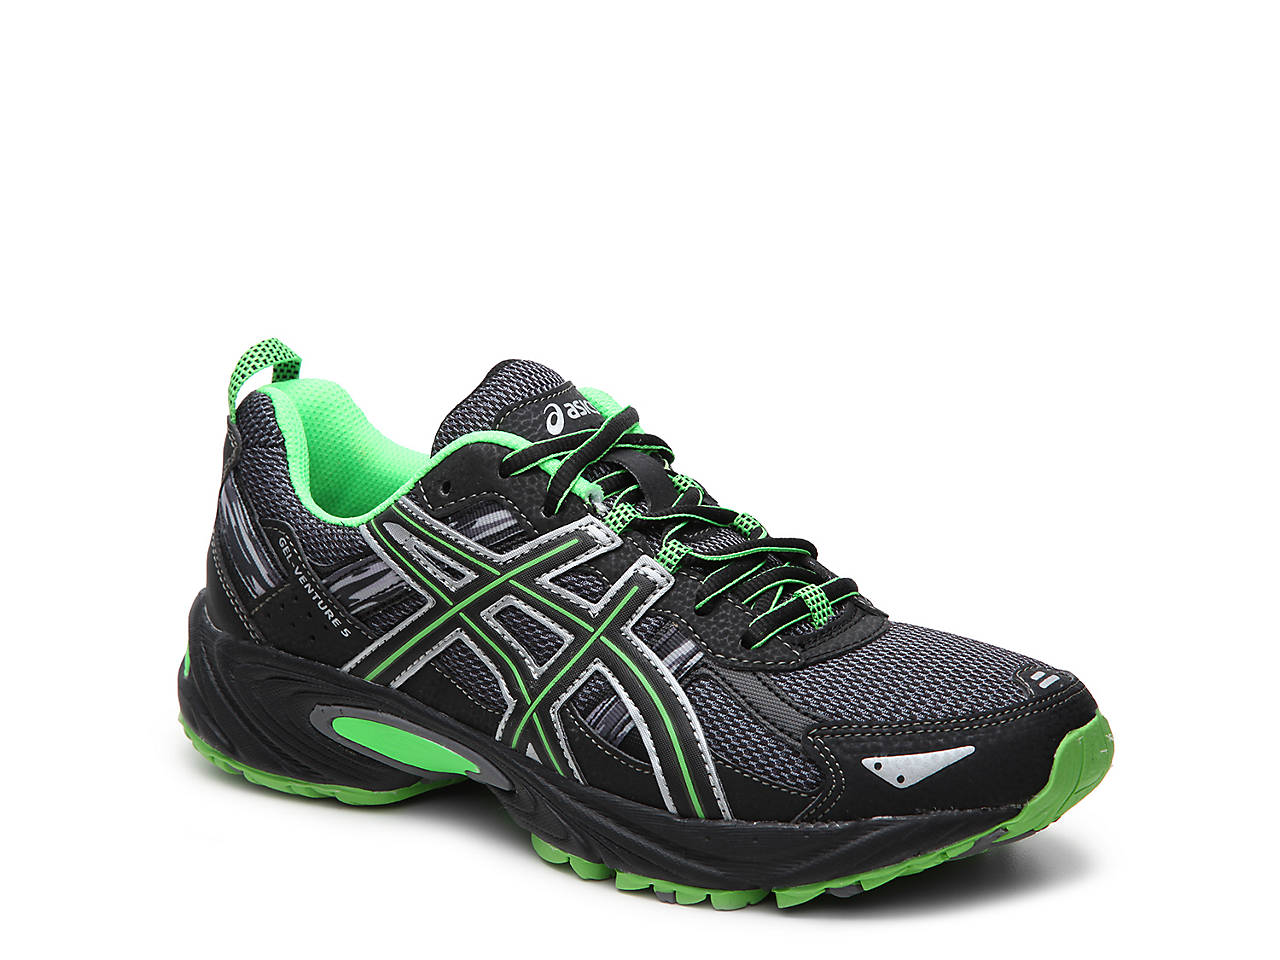 ASICS GEL-Venture 5 Trail Running Shoe - Men's Men's Shoes